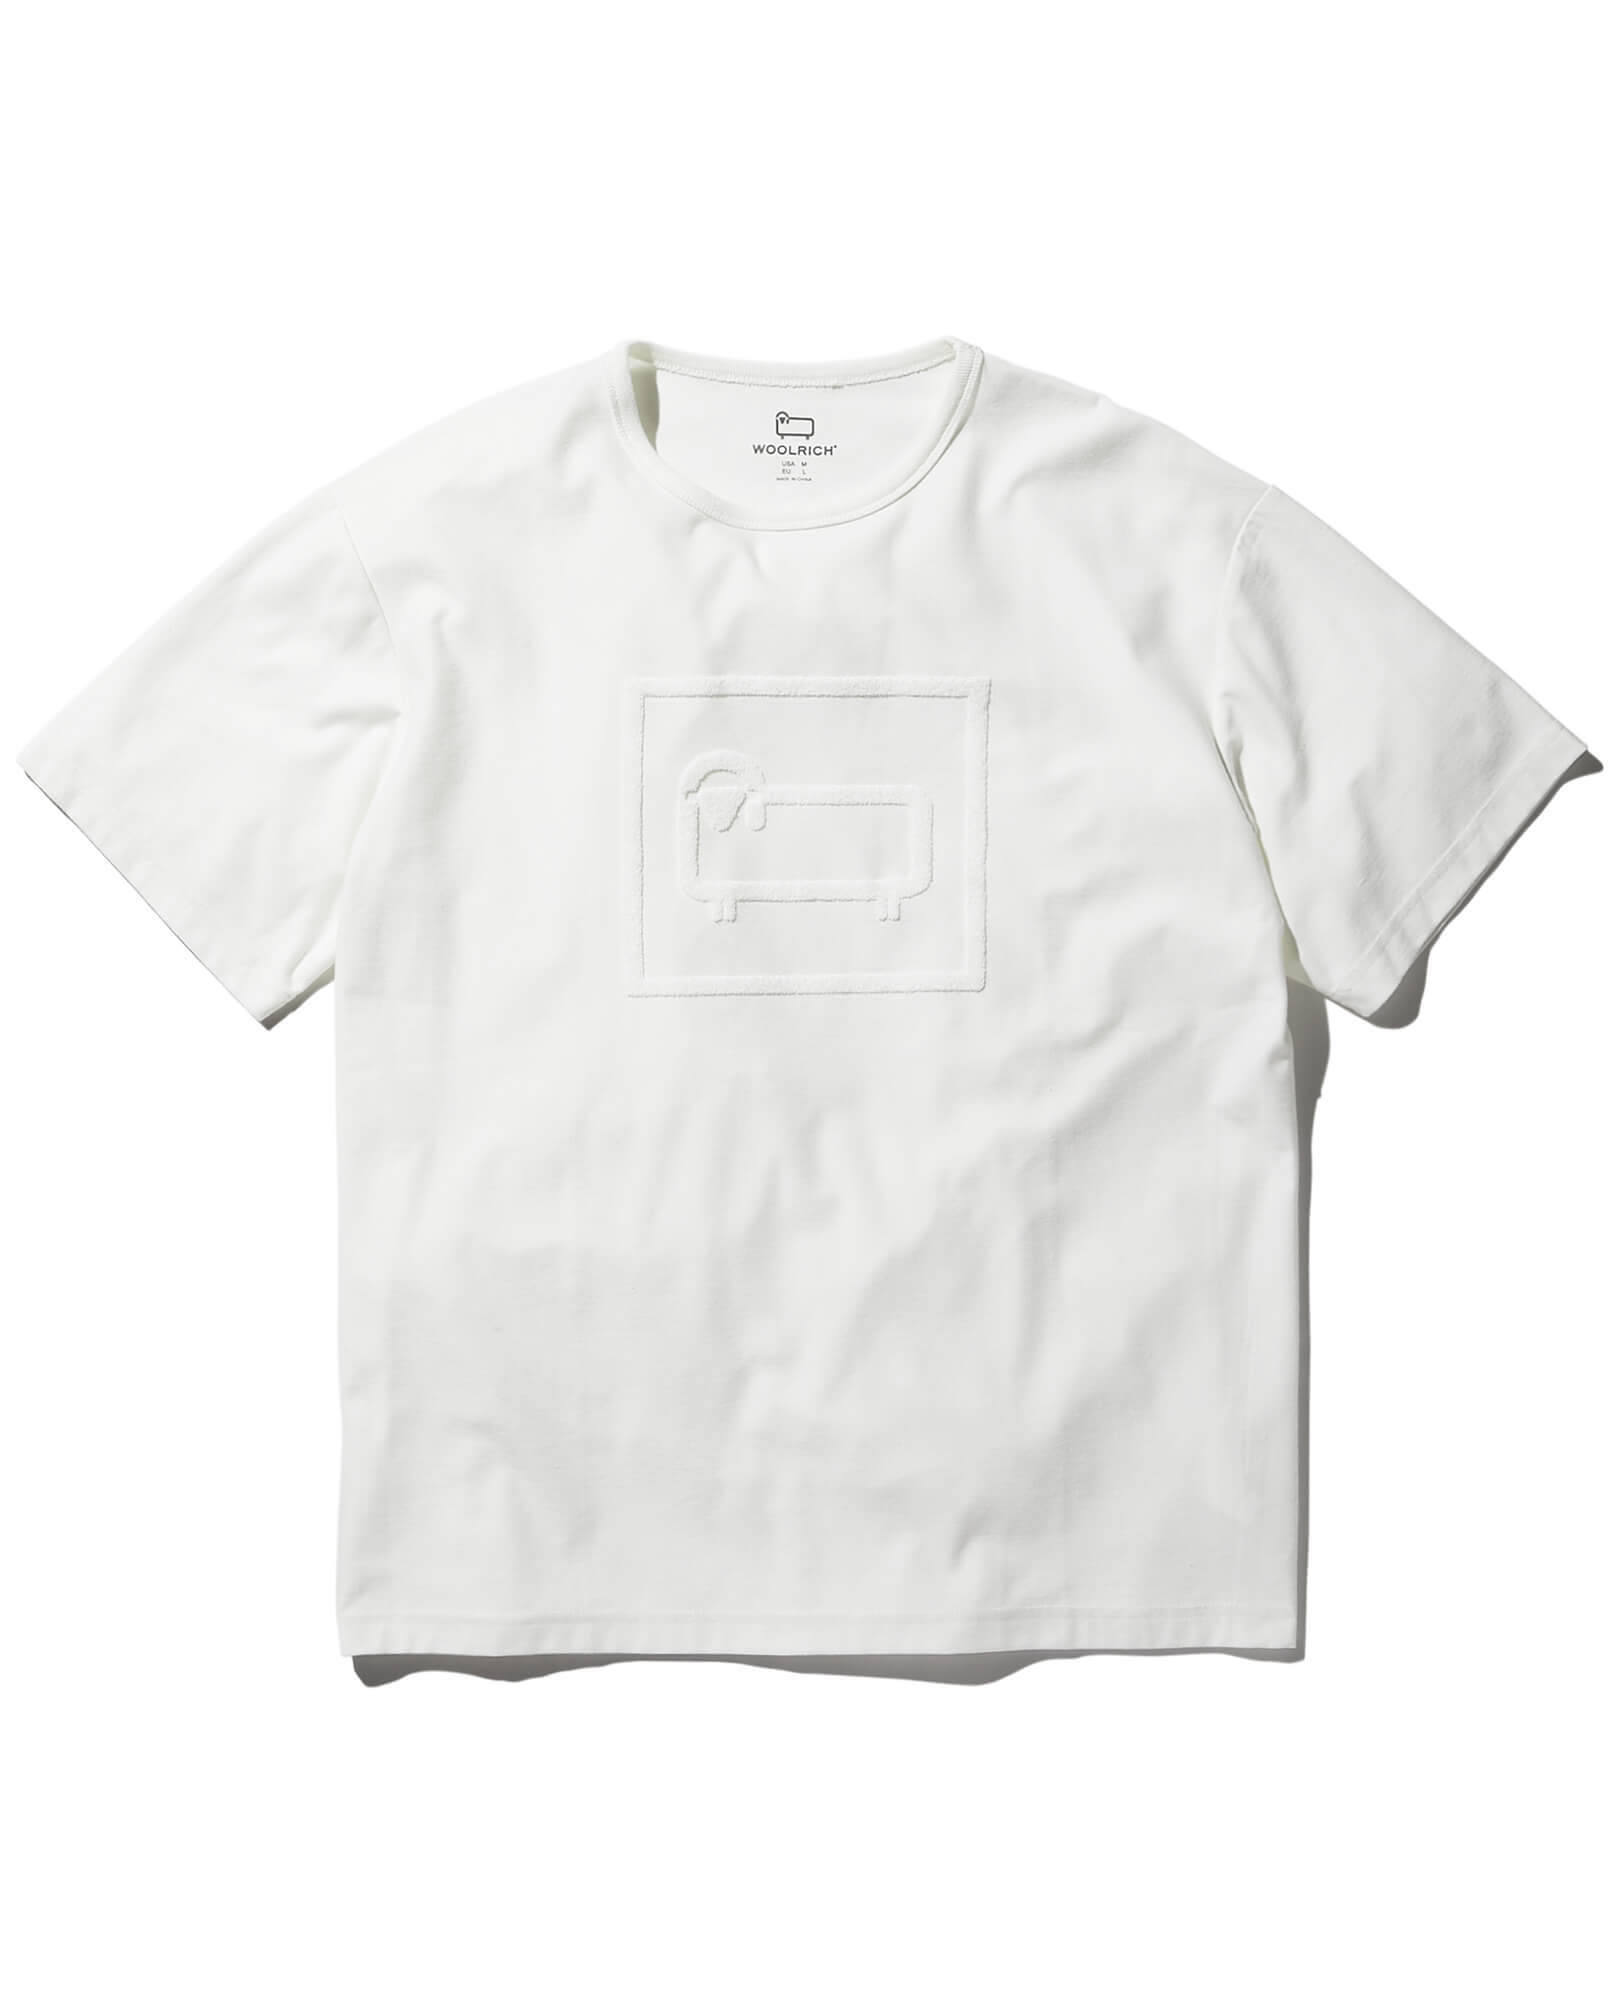 COMPILE SHORT SLEEVE TEE